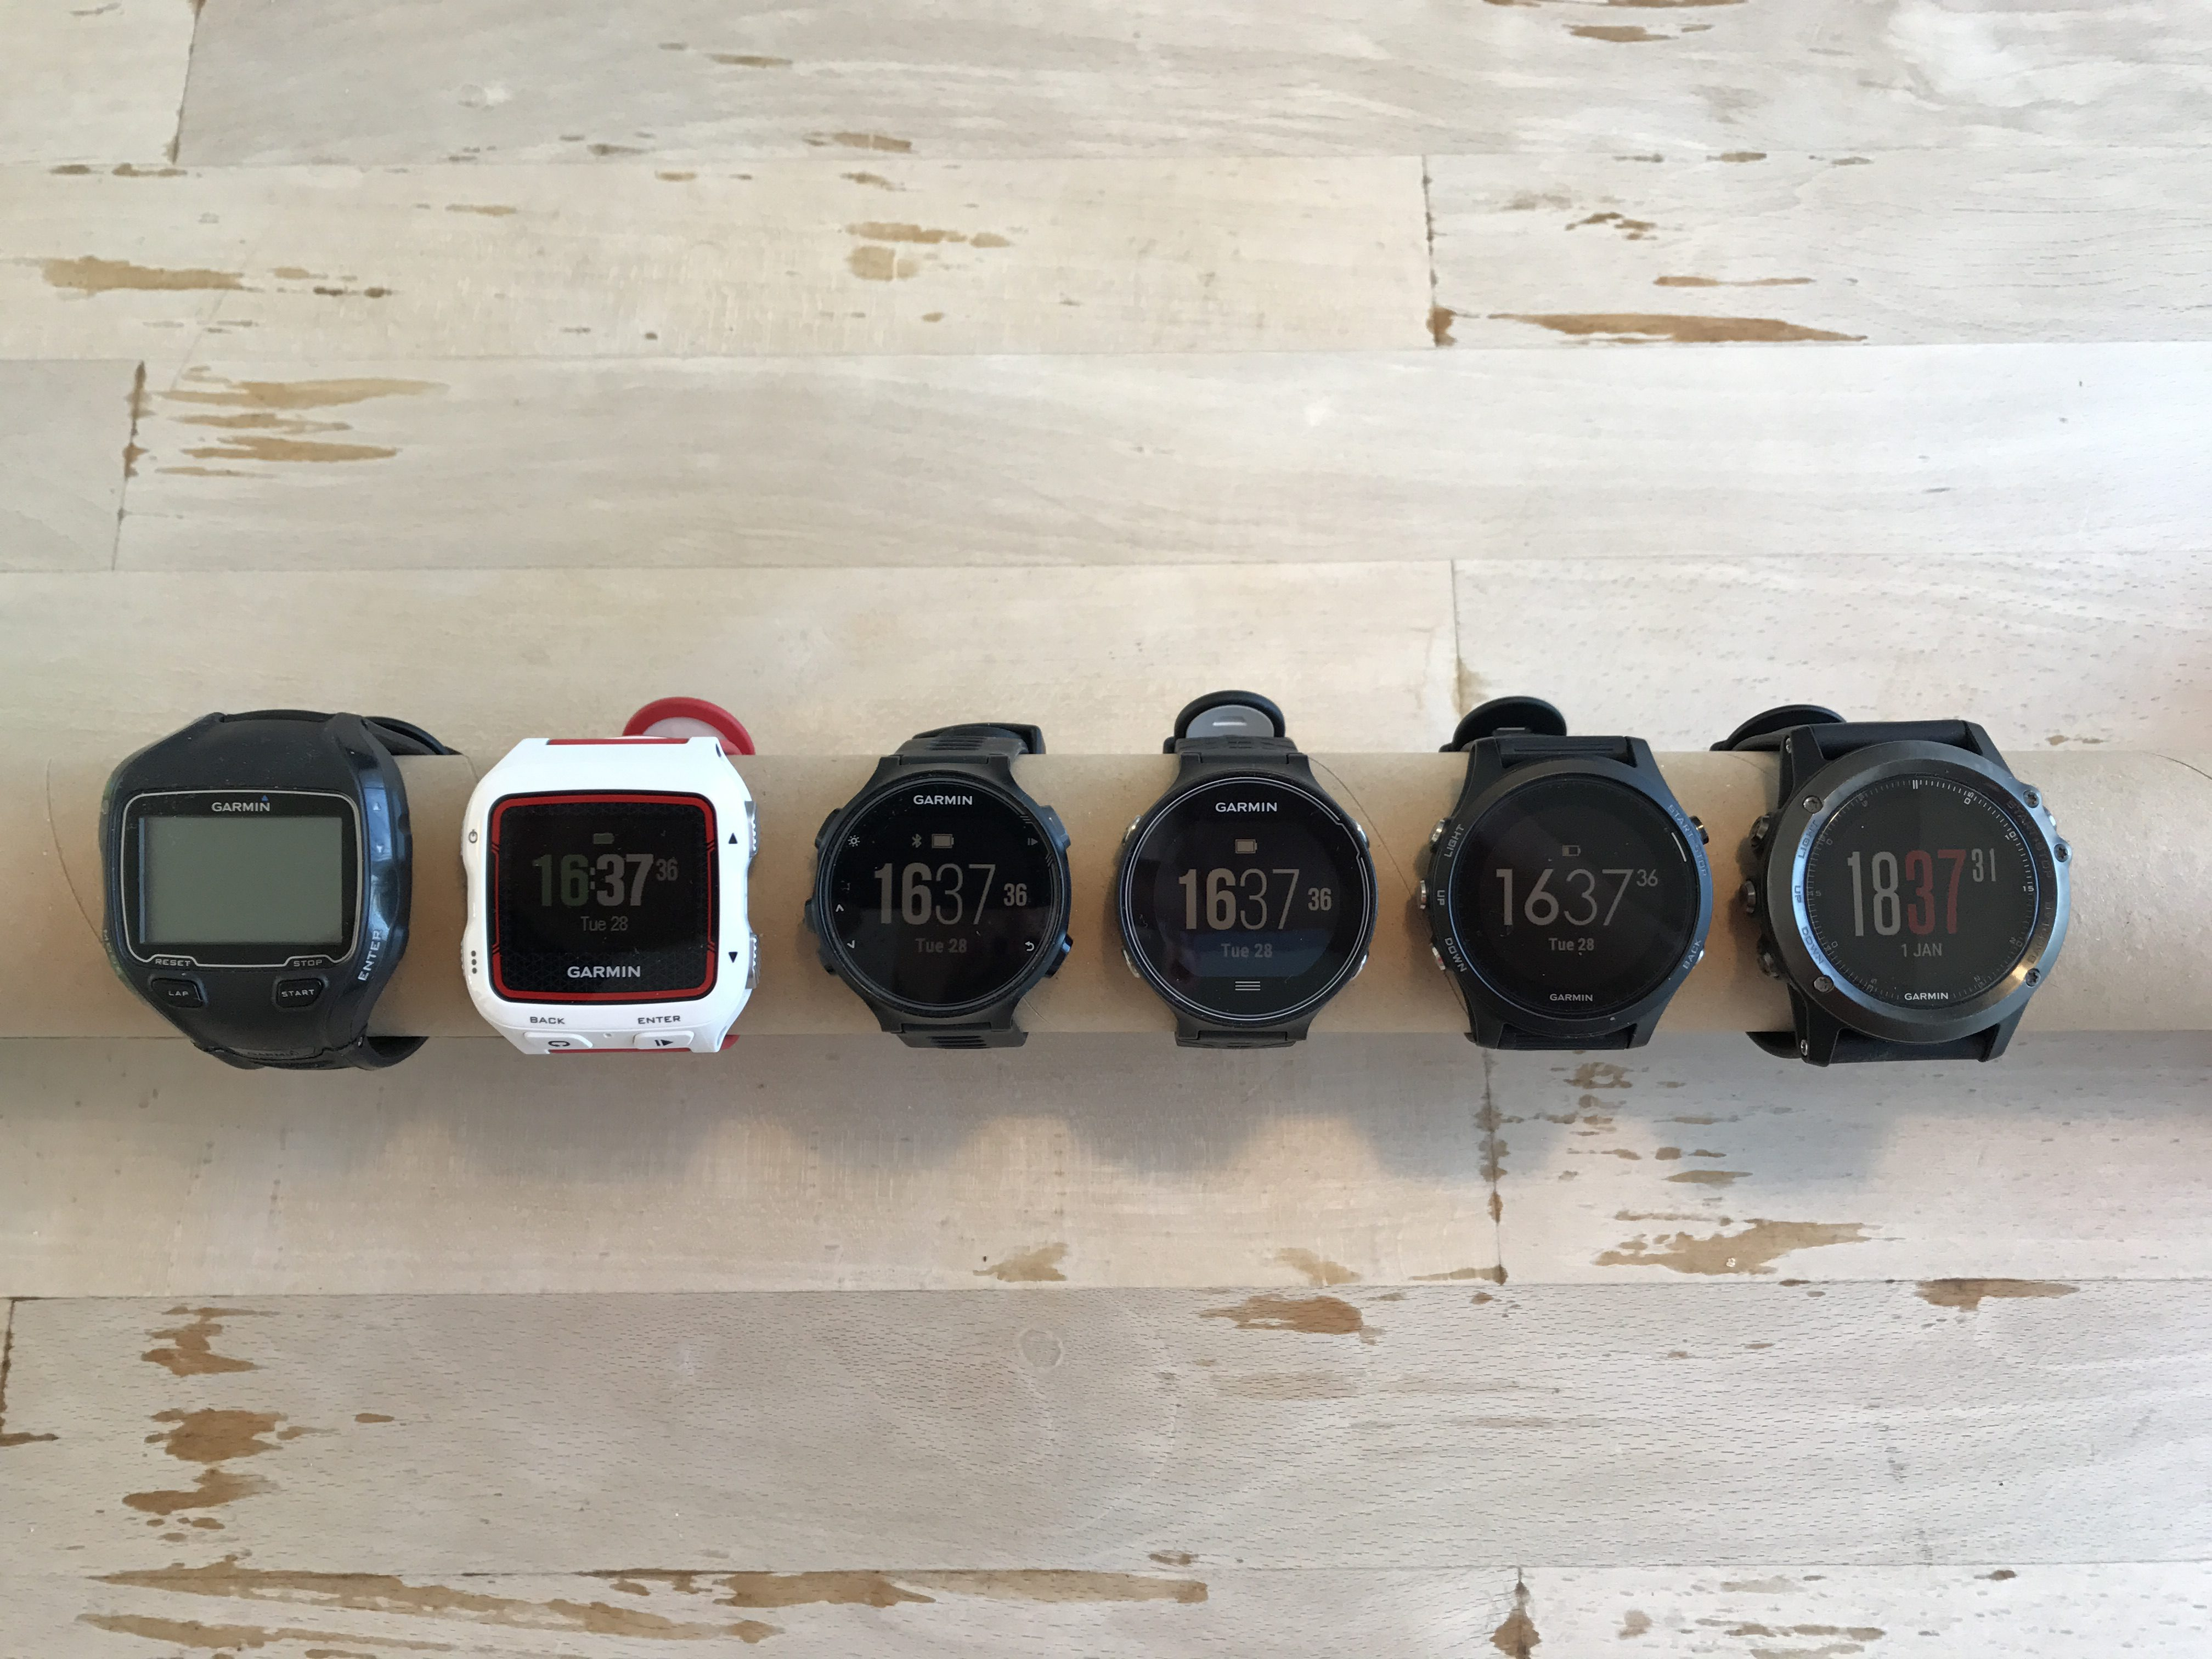 Forerunner 935XT comparison to Forerunner 910XT, 920XT, 735XT, 630 and fënix 3 front